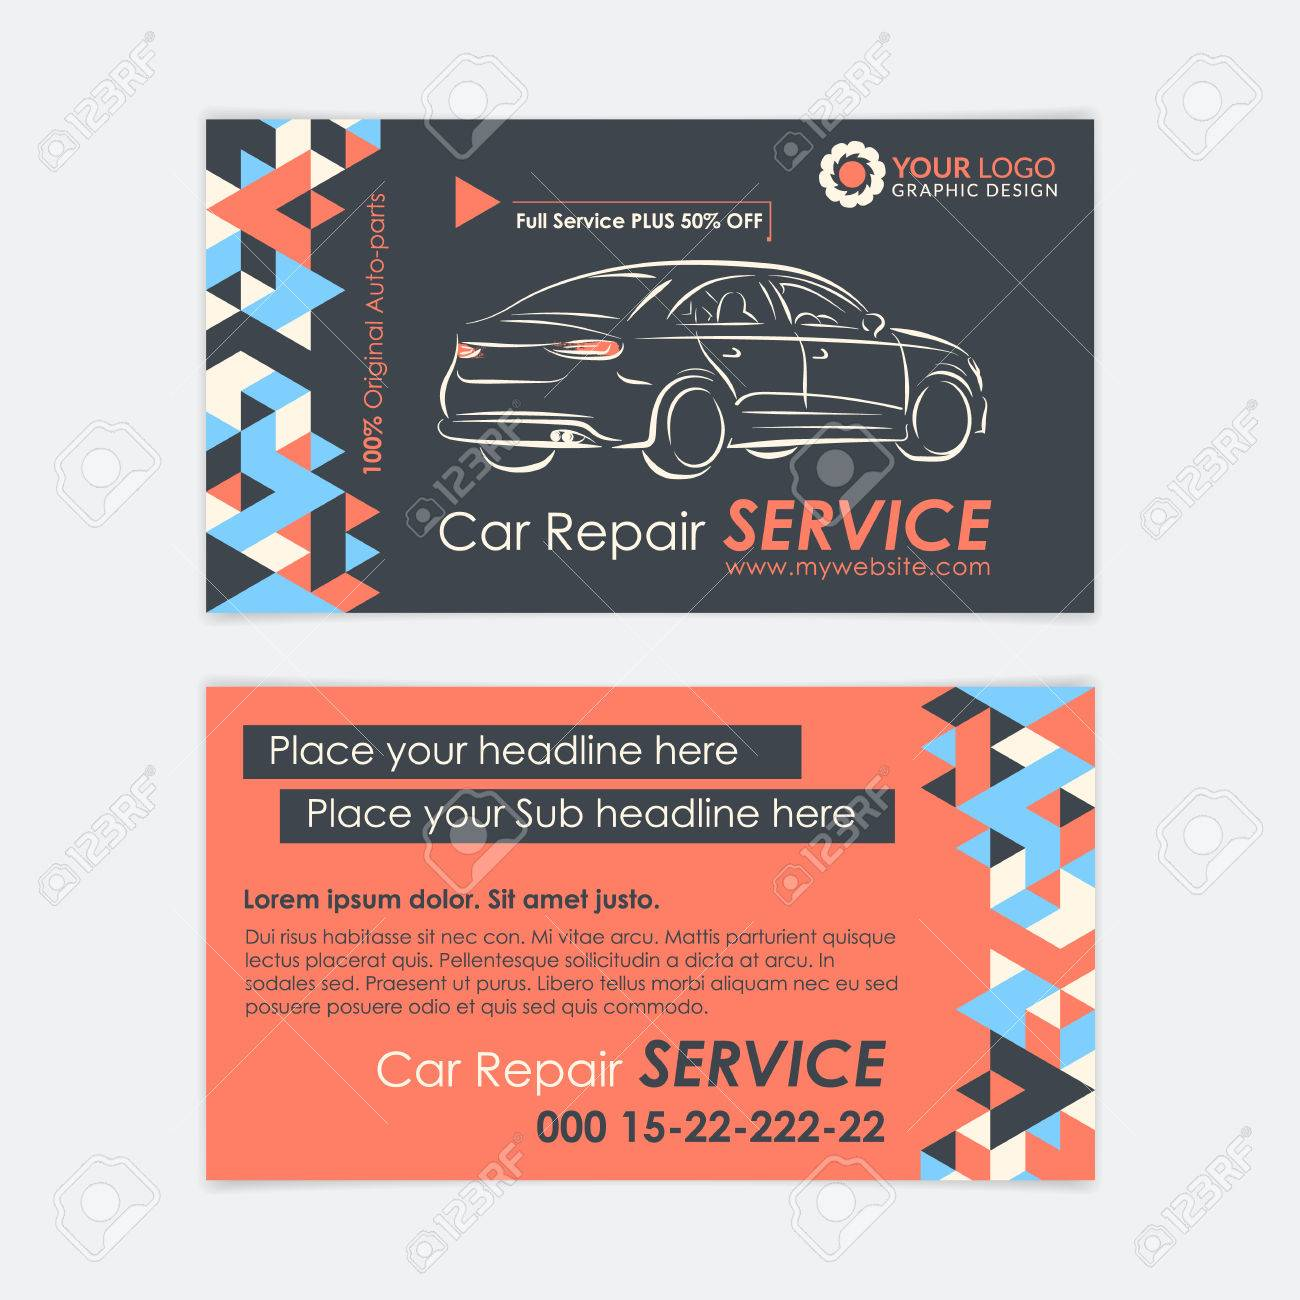 Automotive Service Modele De Carte Visite Diagnostic Auto Et Reparation Transport Creez